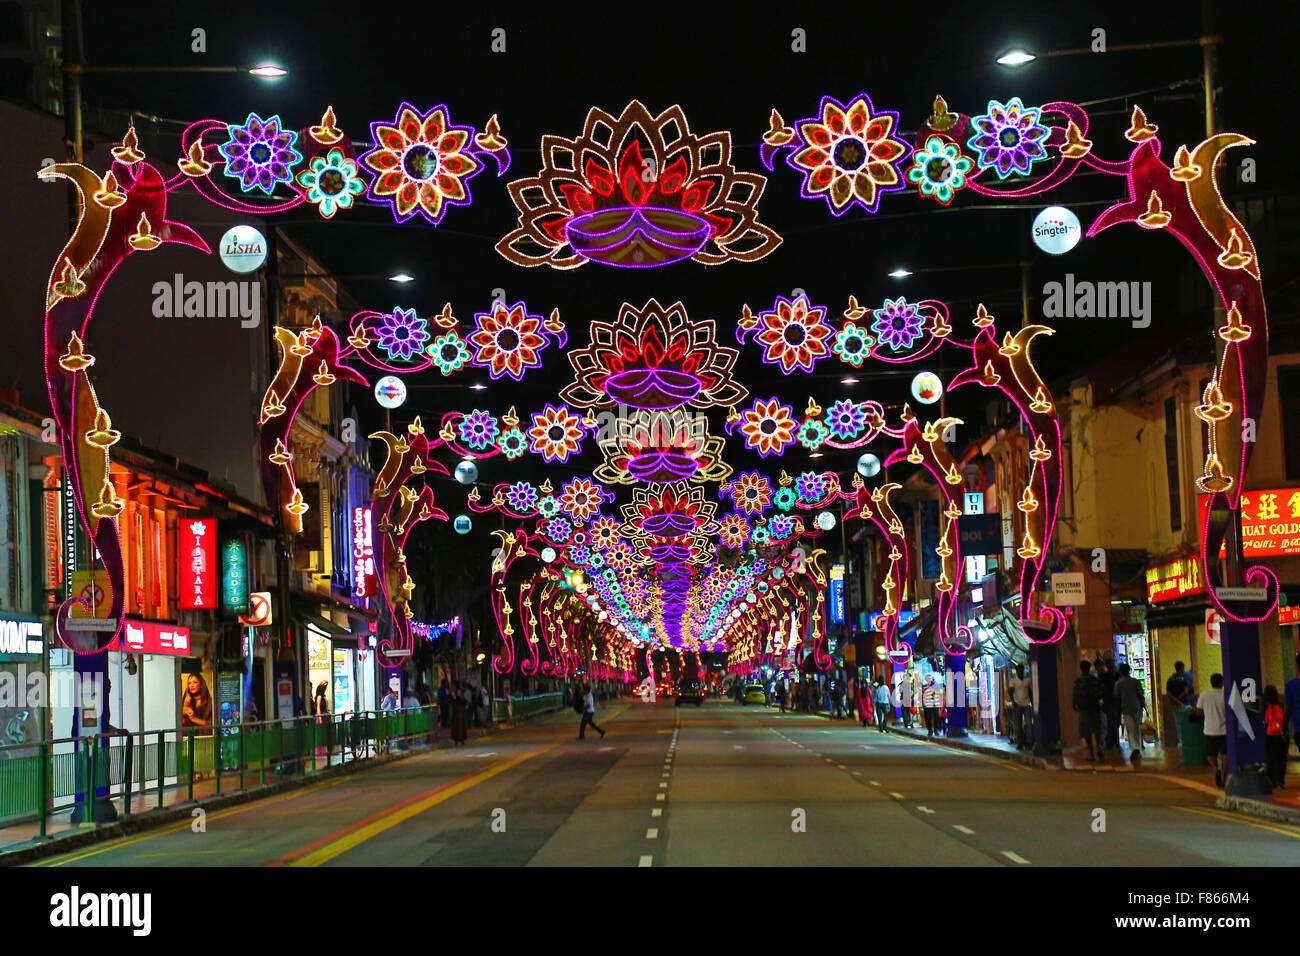 Street lights for Diwali in Singapore, Republic of Singapore - Stock Image